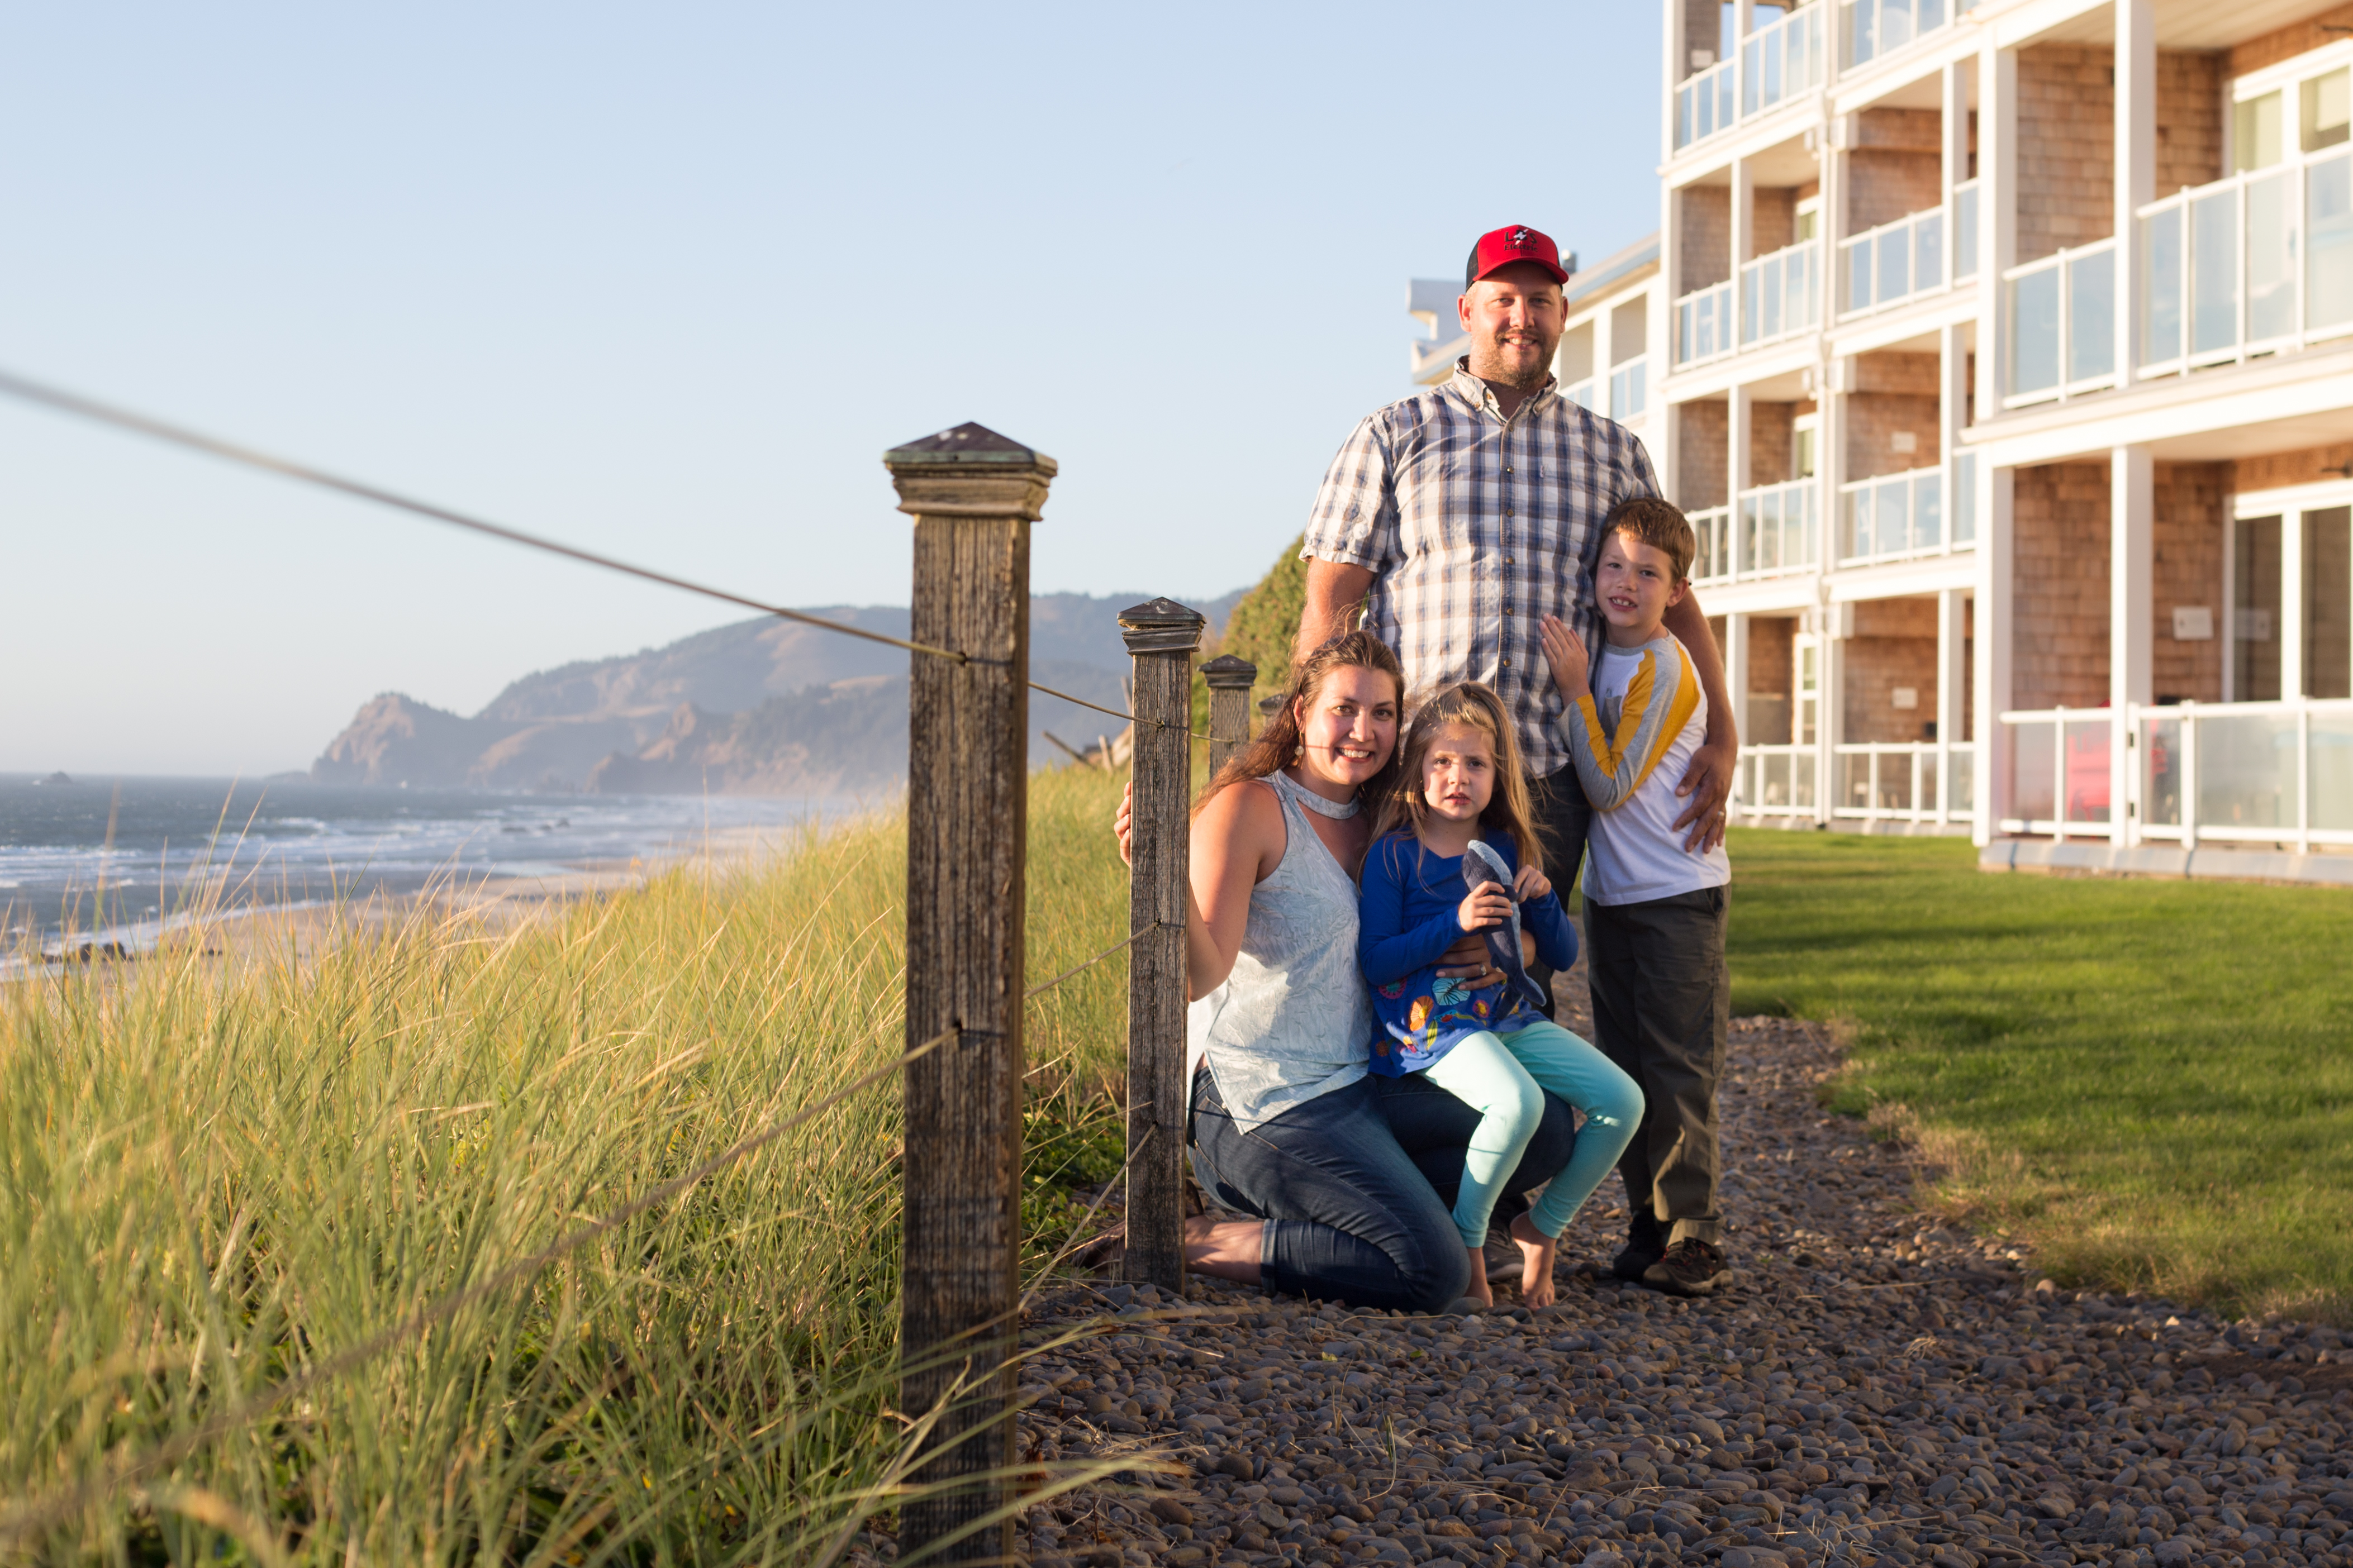 Pounds Family Lincoln City 2017 (15 of 17)